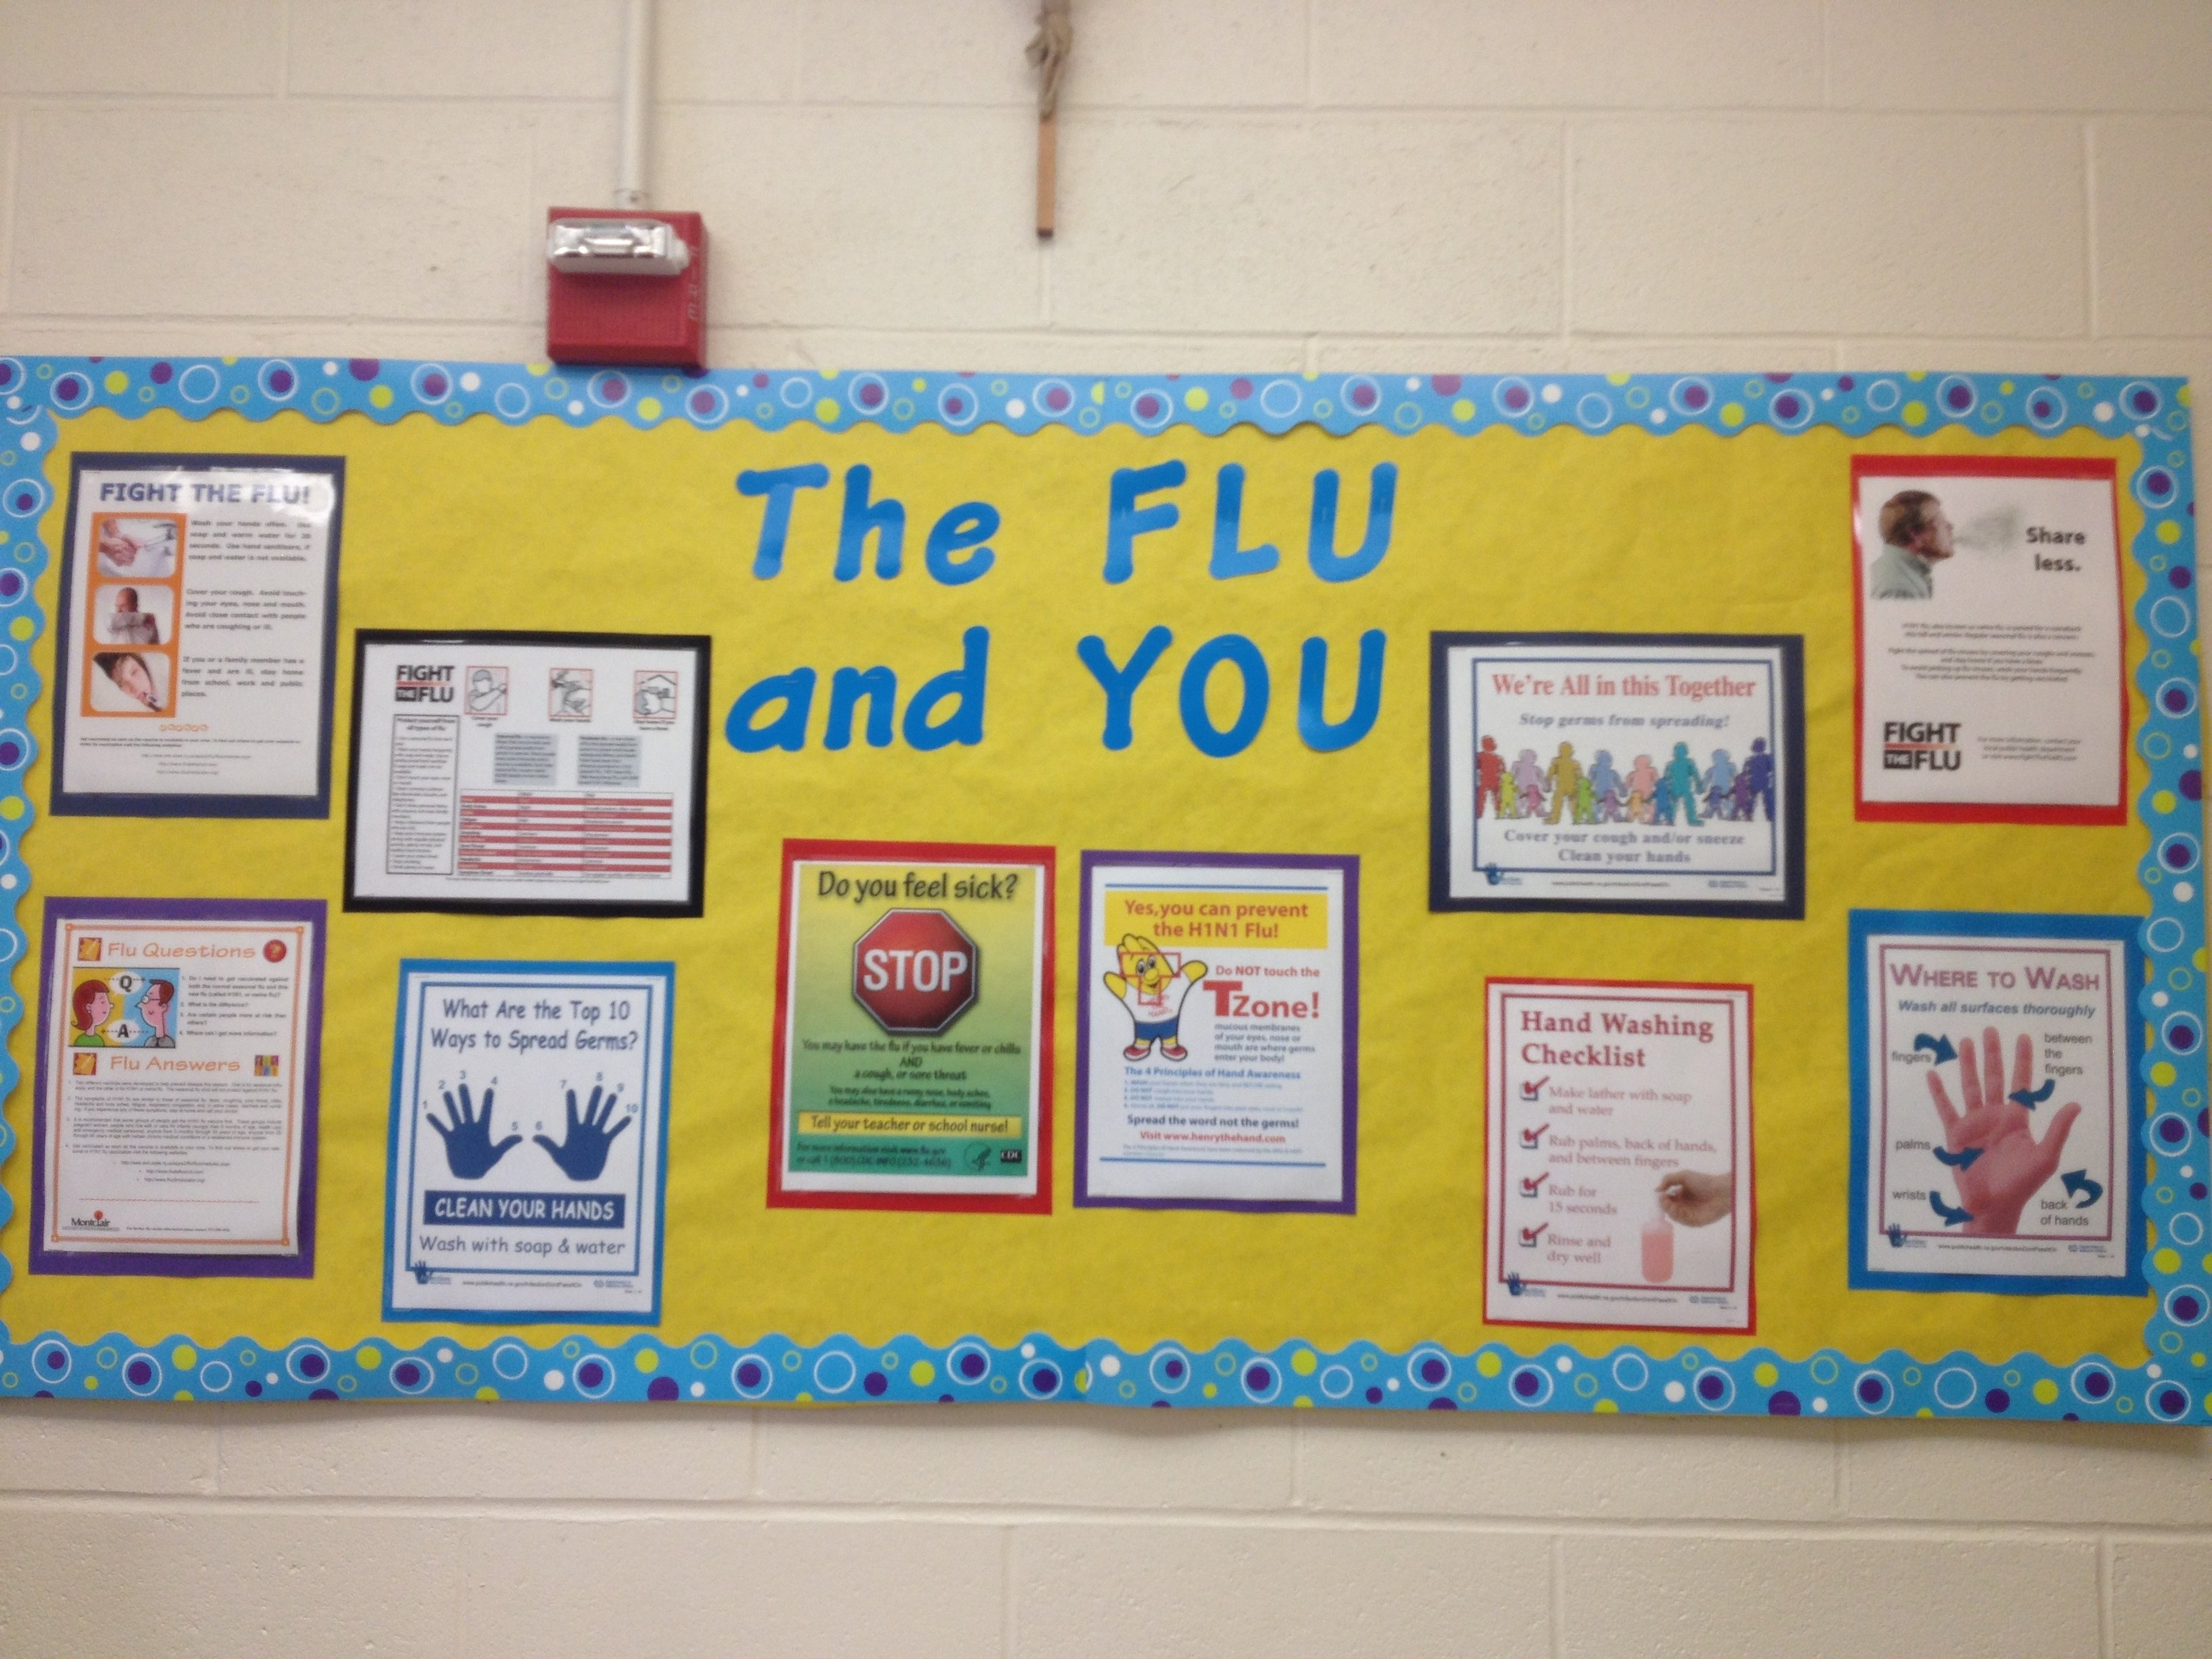 10 Unique School Nurse Bulletin Board Ideas pinwendy gonzalez on boards for school pinterest flu 2020